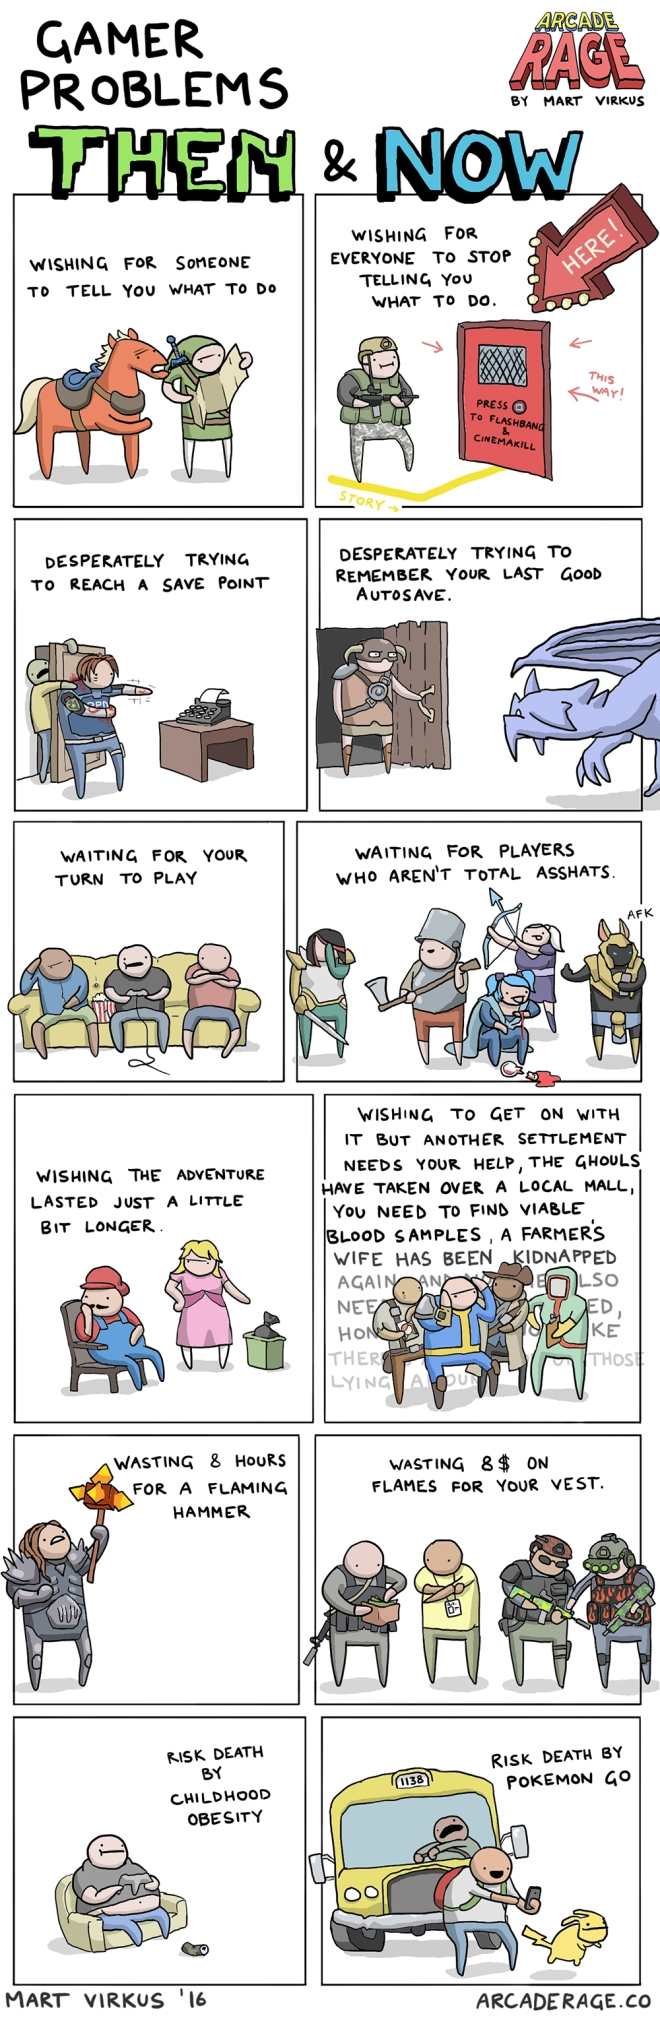 Gamer Problems Then & Now - Mart Virkus